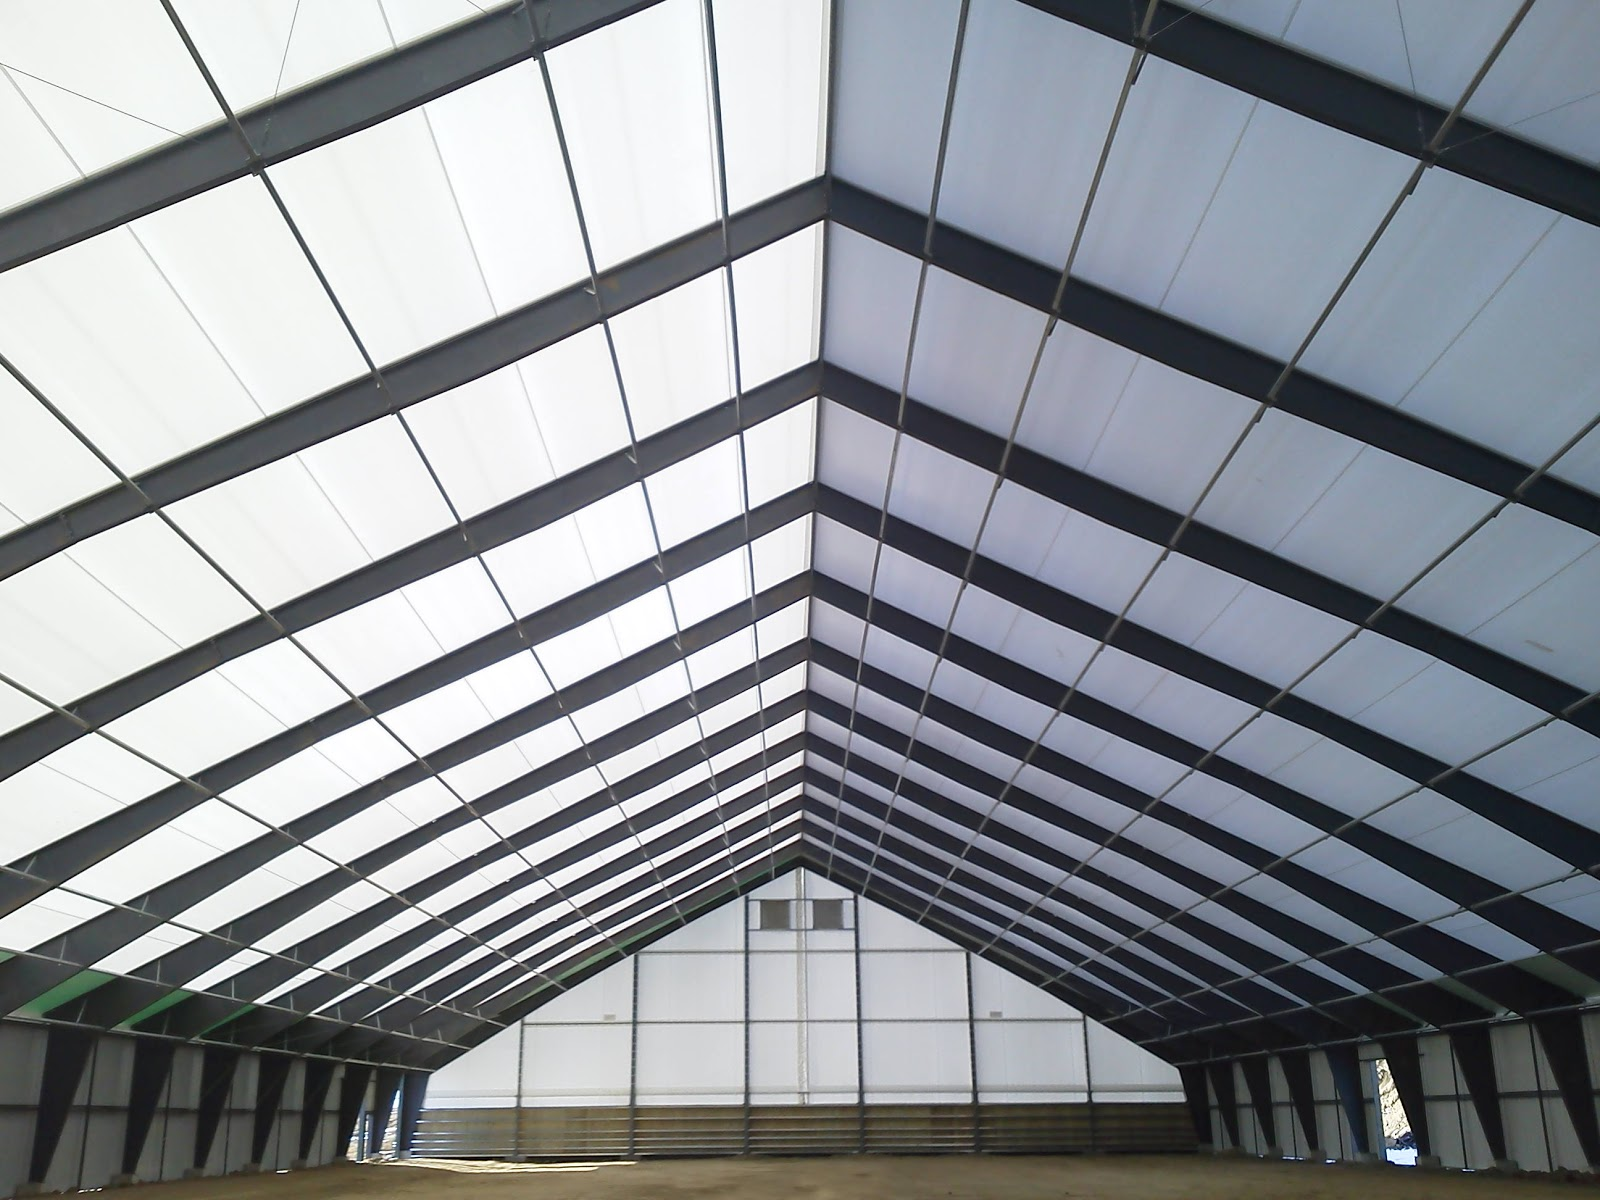 Tension Fabric Structures : Tension fabric buildings legacy offers